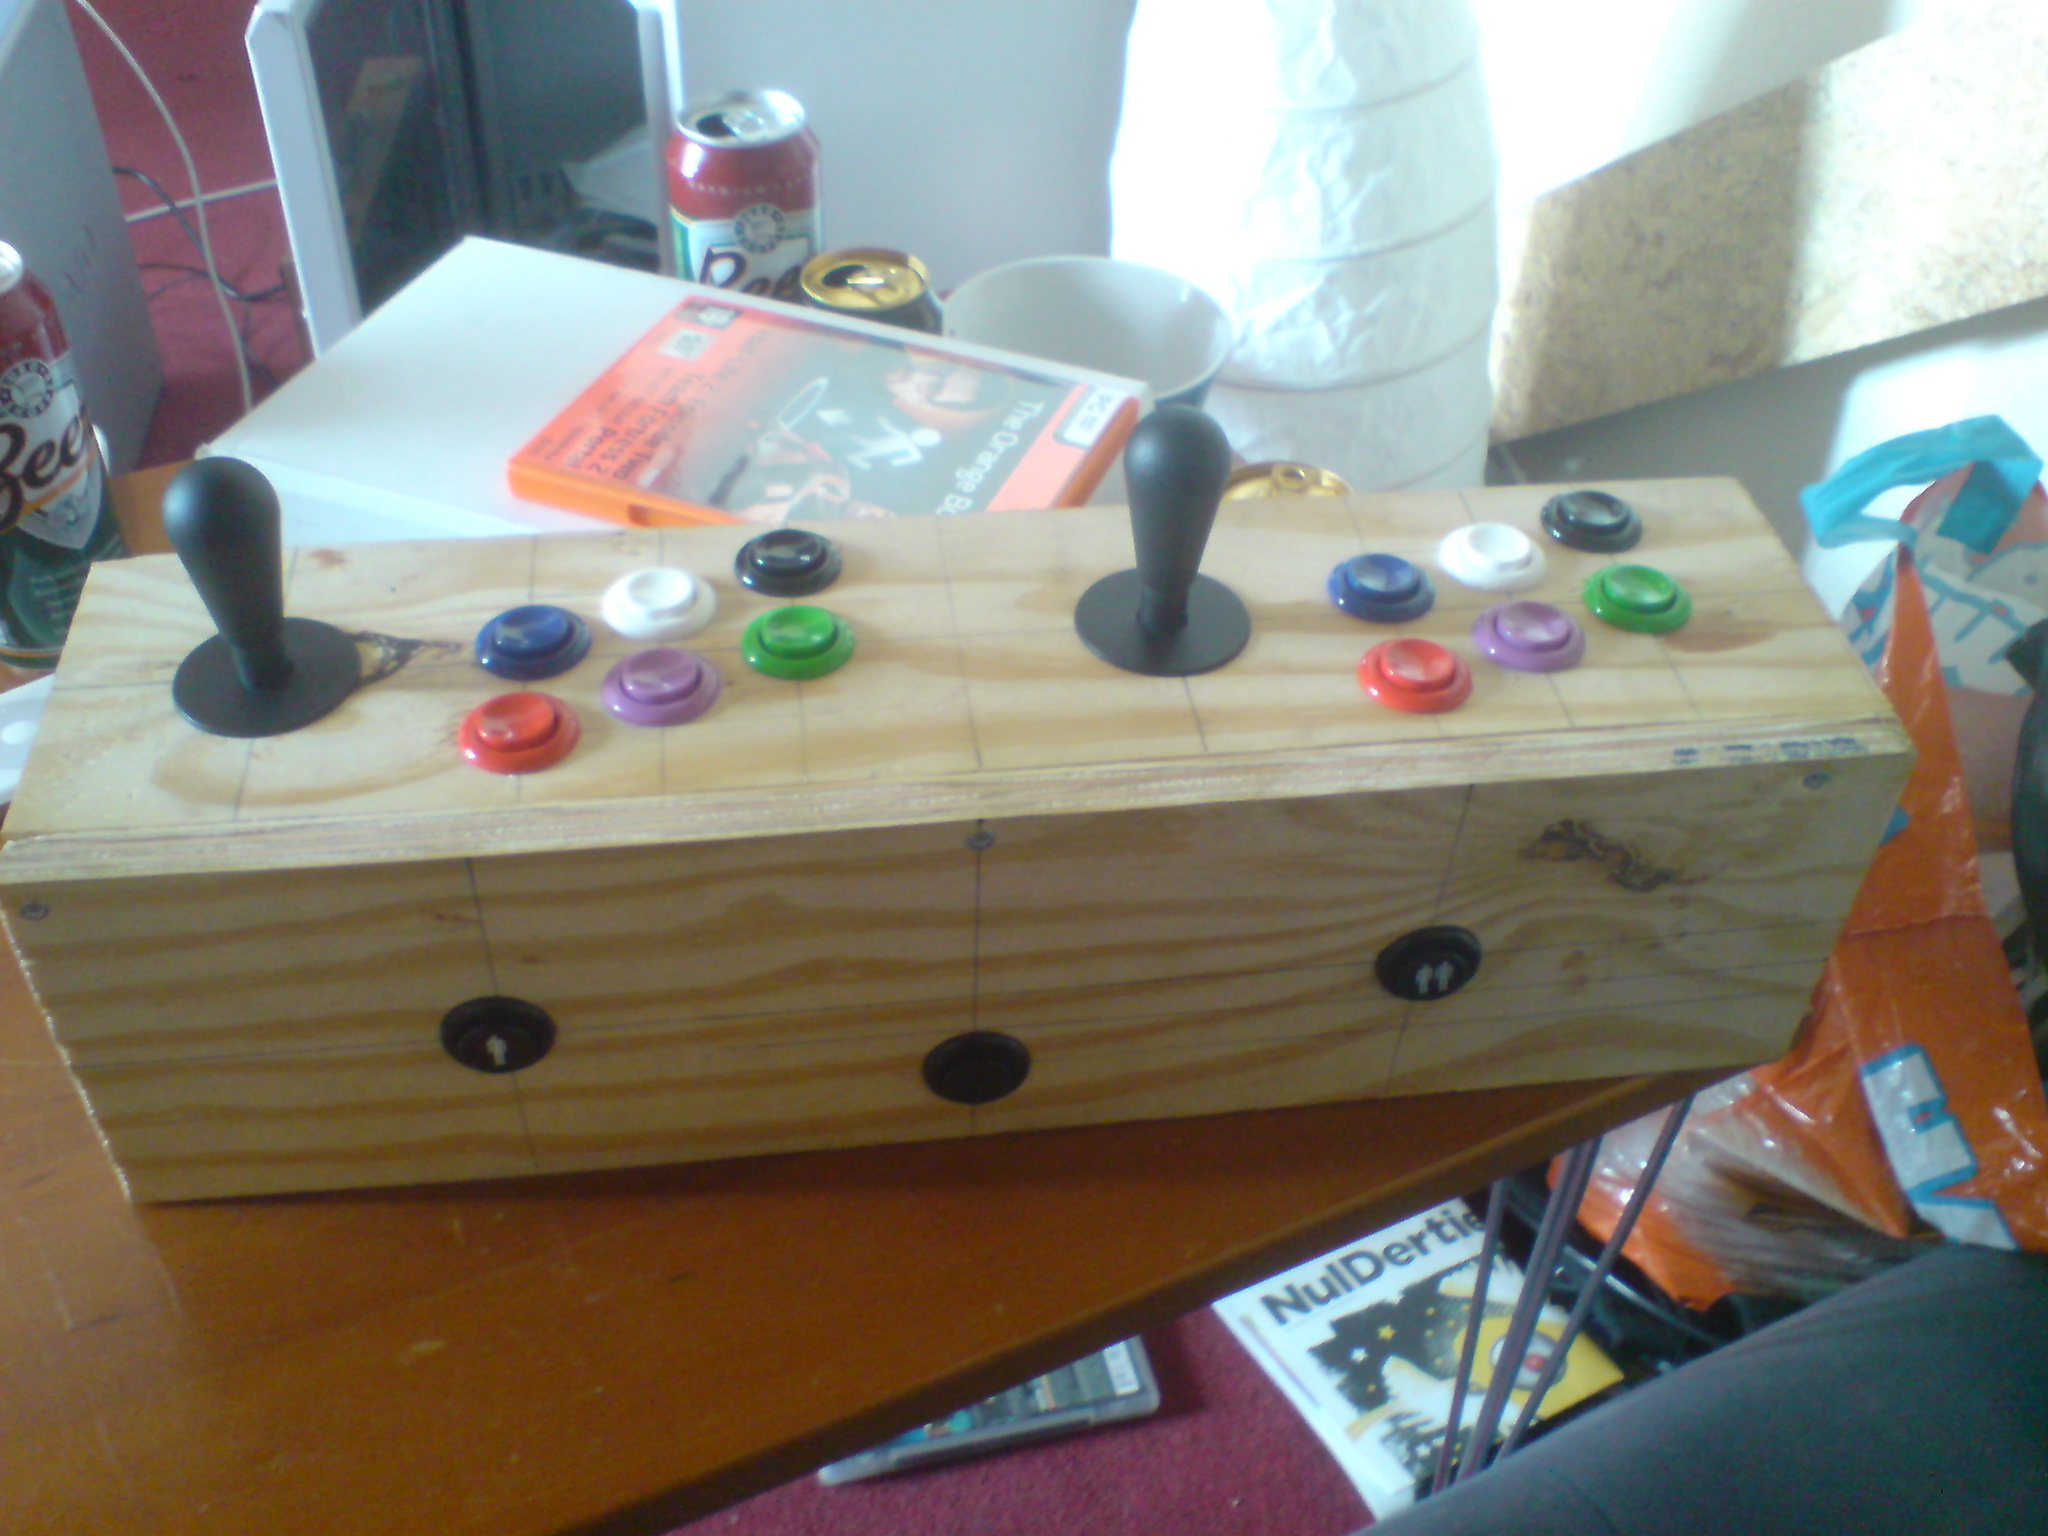 Picture of Controls - Mounting the Buttons